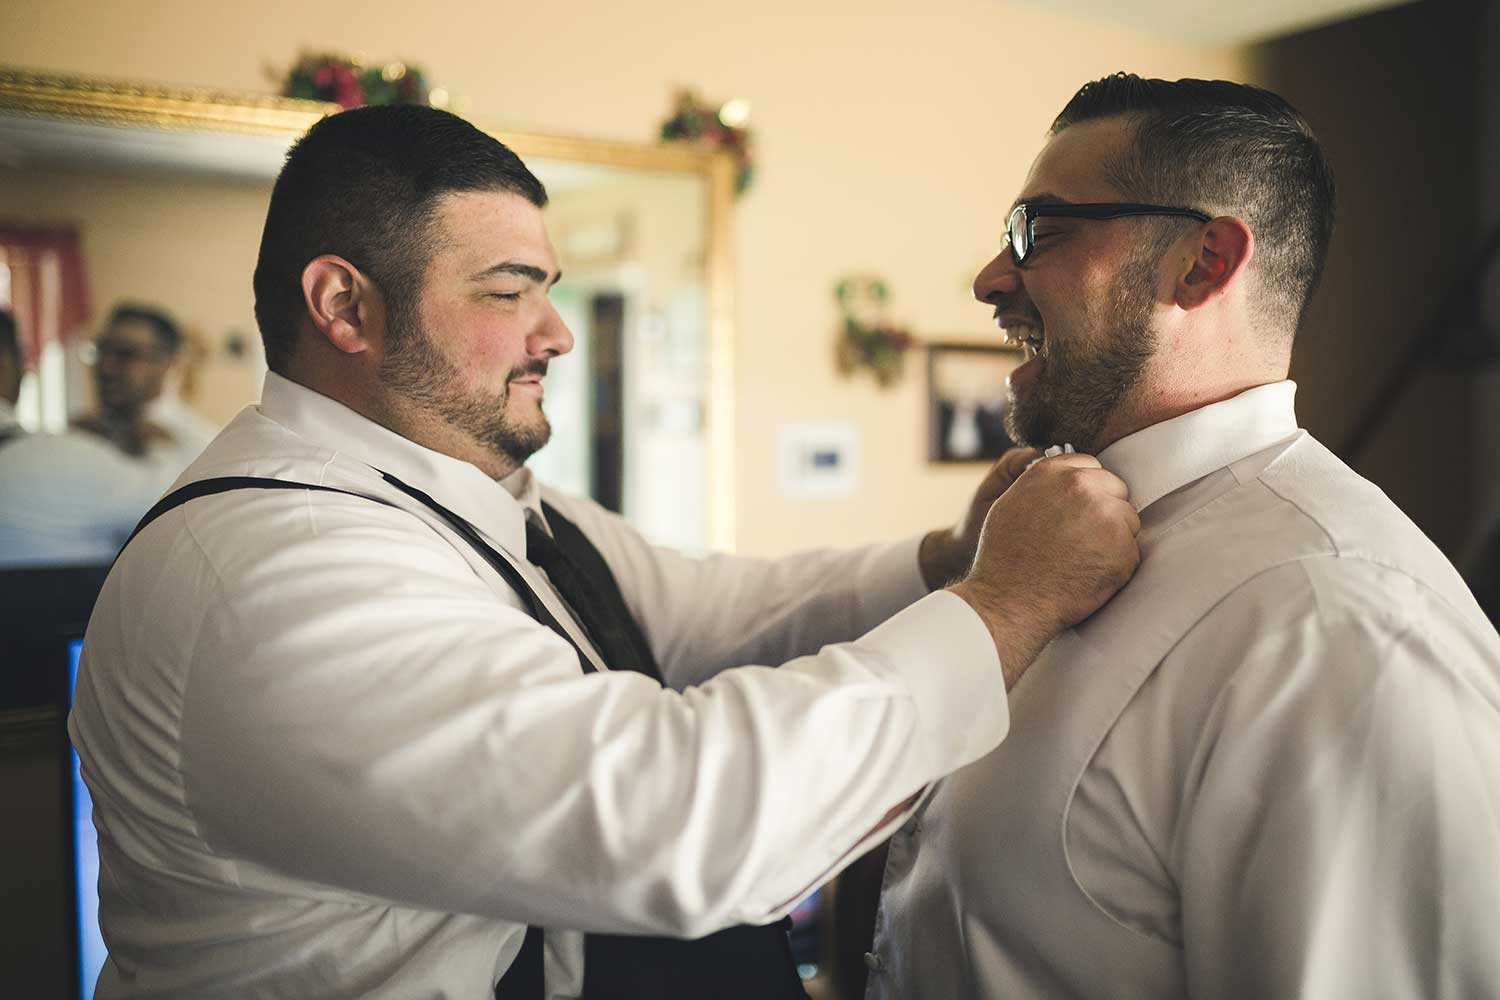 Best man adjusting the grooms bowtie